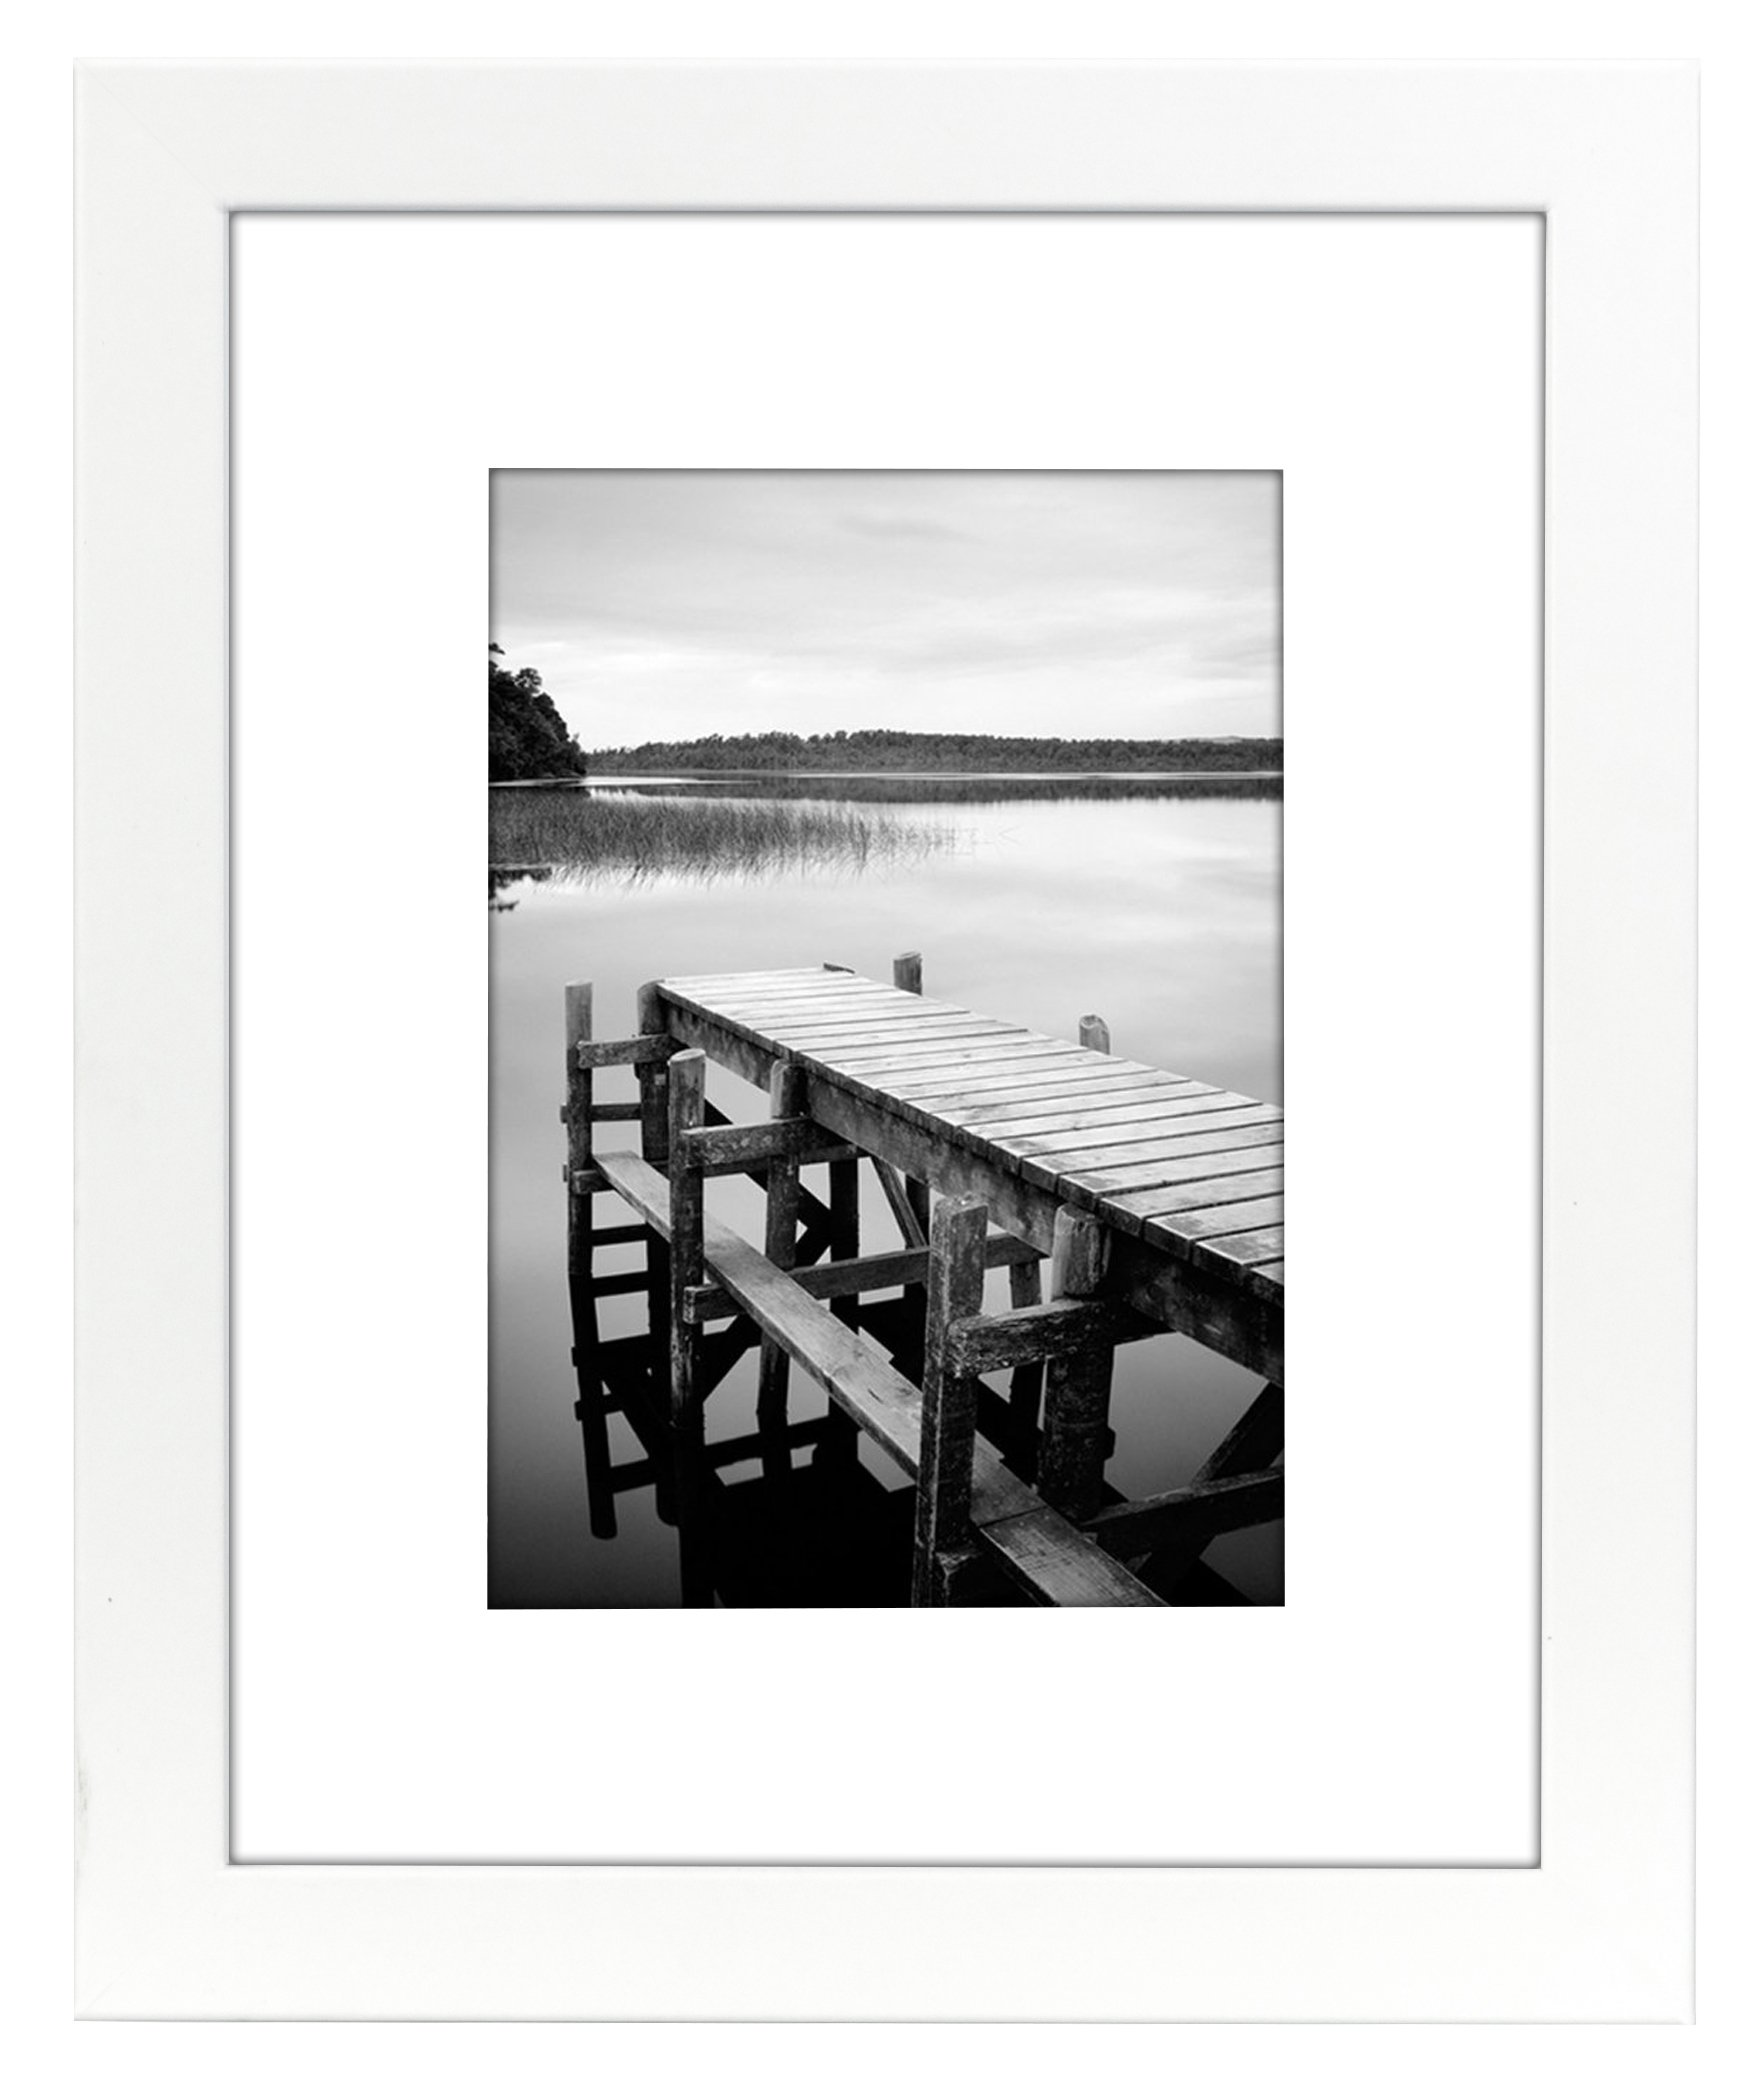 Cheap 4 8x10 Frame, find 4 8x10 Frame deals on line at Alibaba.com